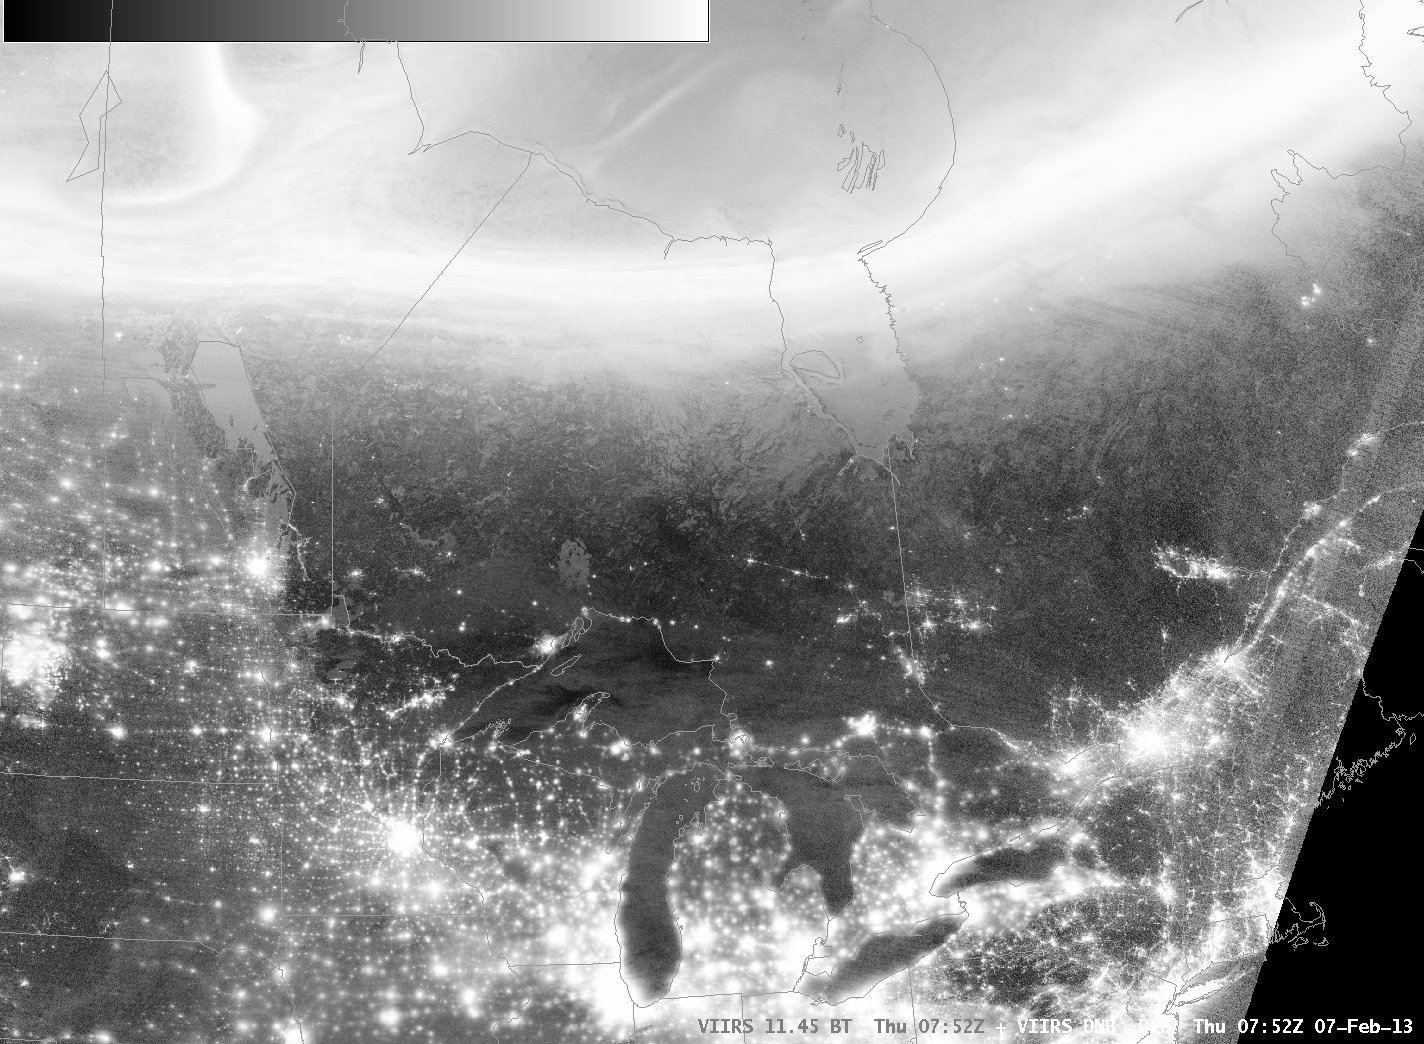 Suomi/NPP VIIRS Day/Night Visible Band and 3.74 µm infrared channel images (click image to play animation)